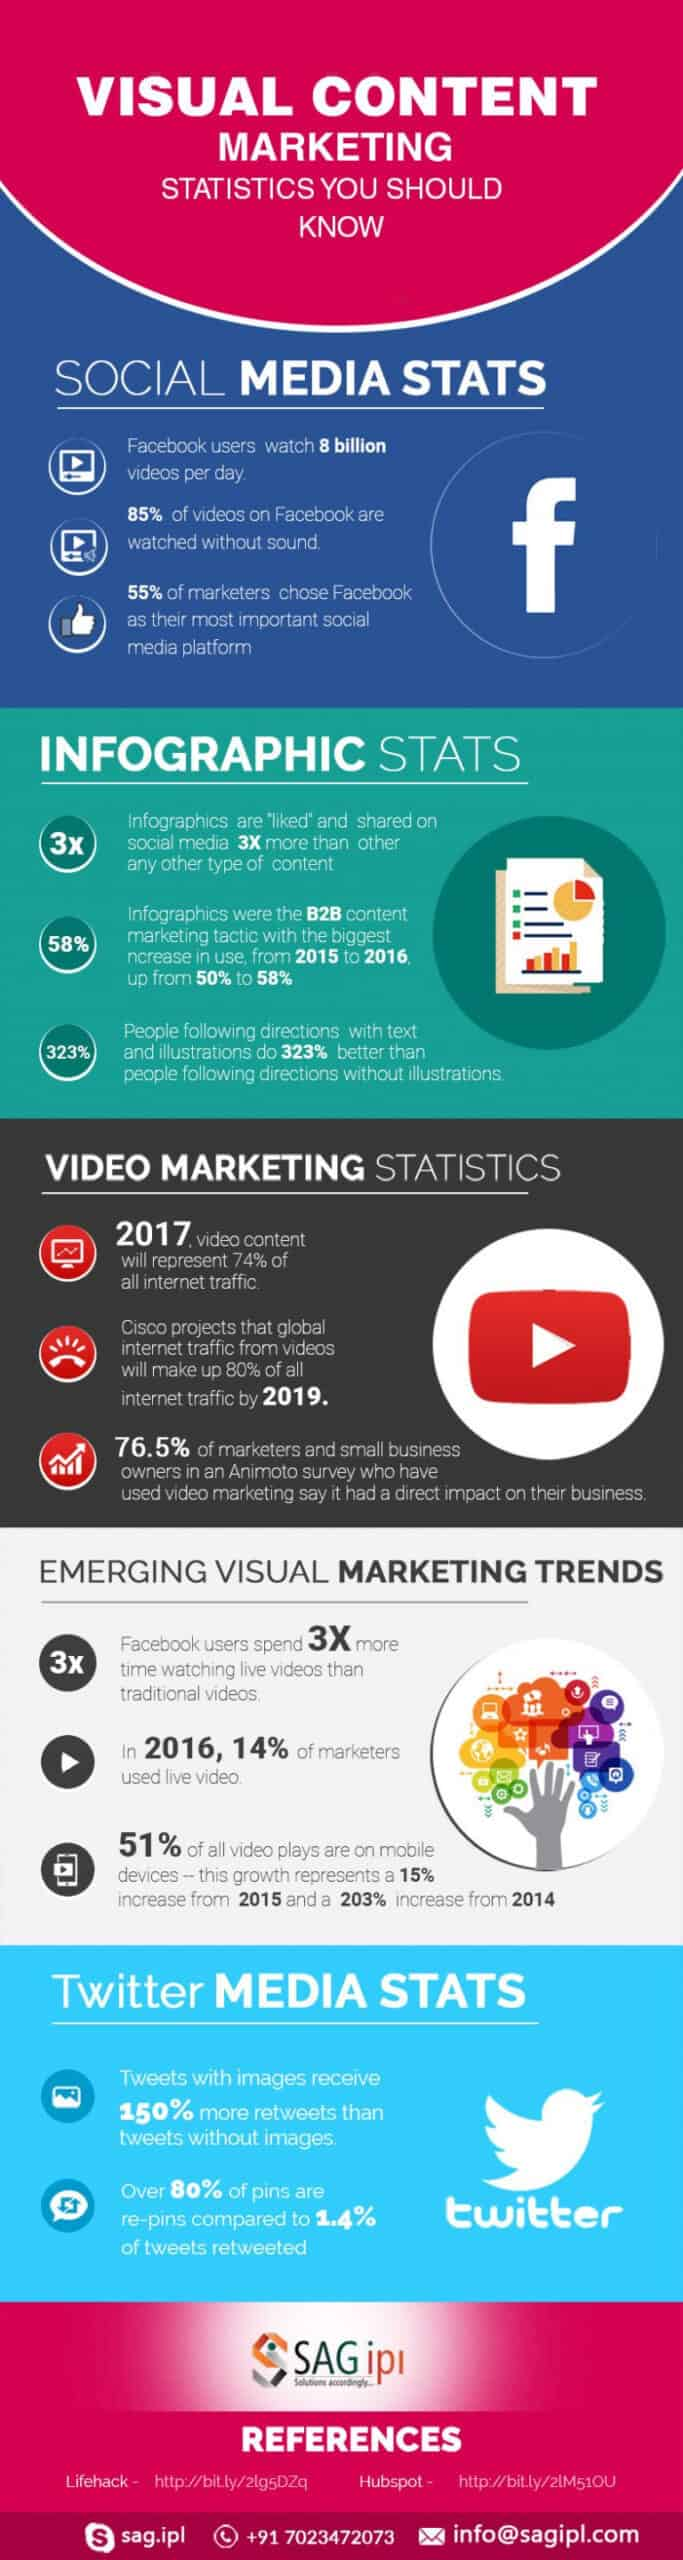 Get a deeper insight into visual content marketing in this great infographic!